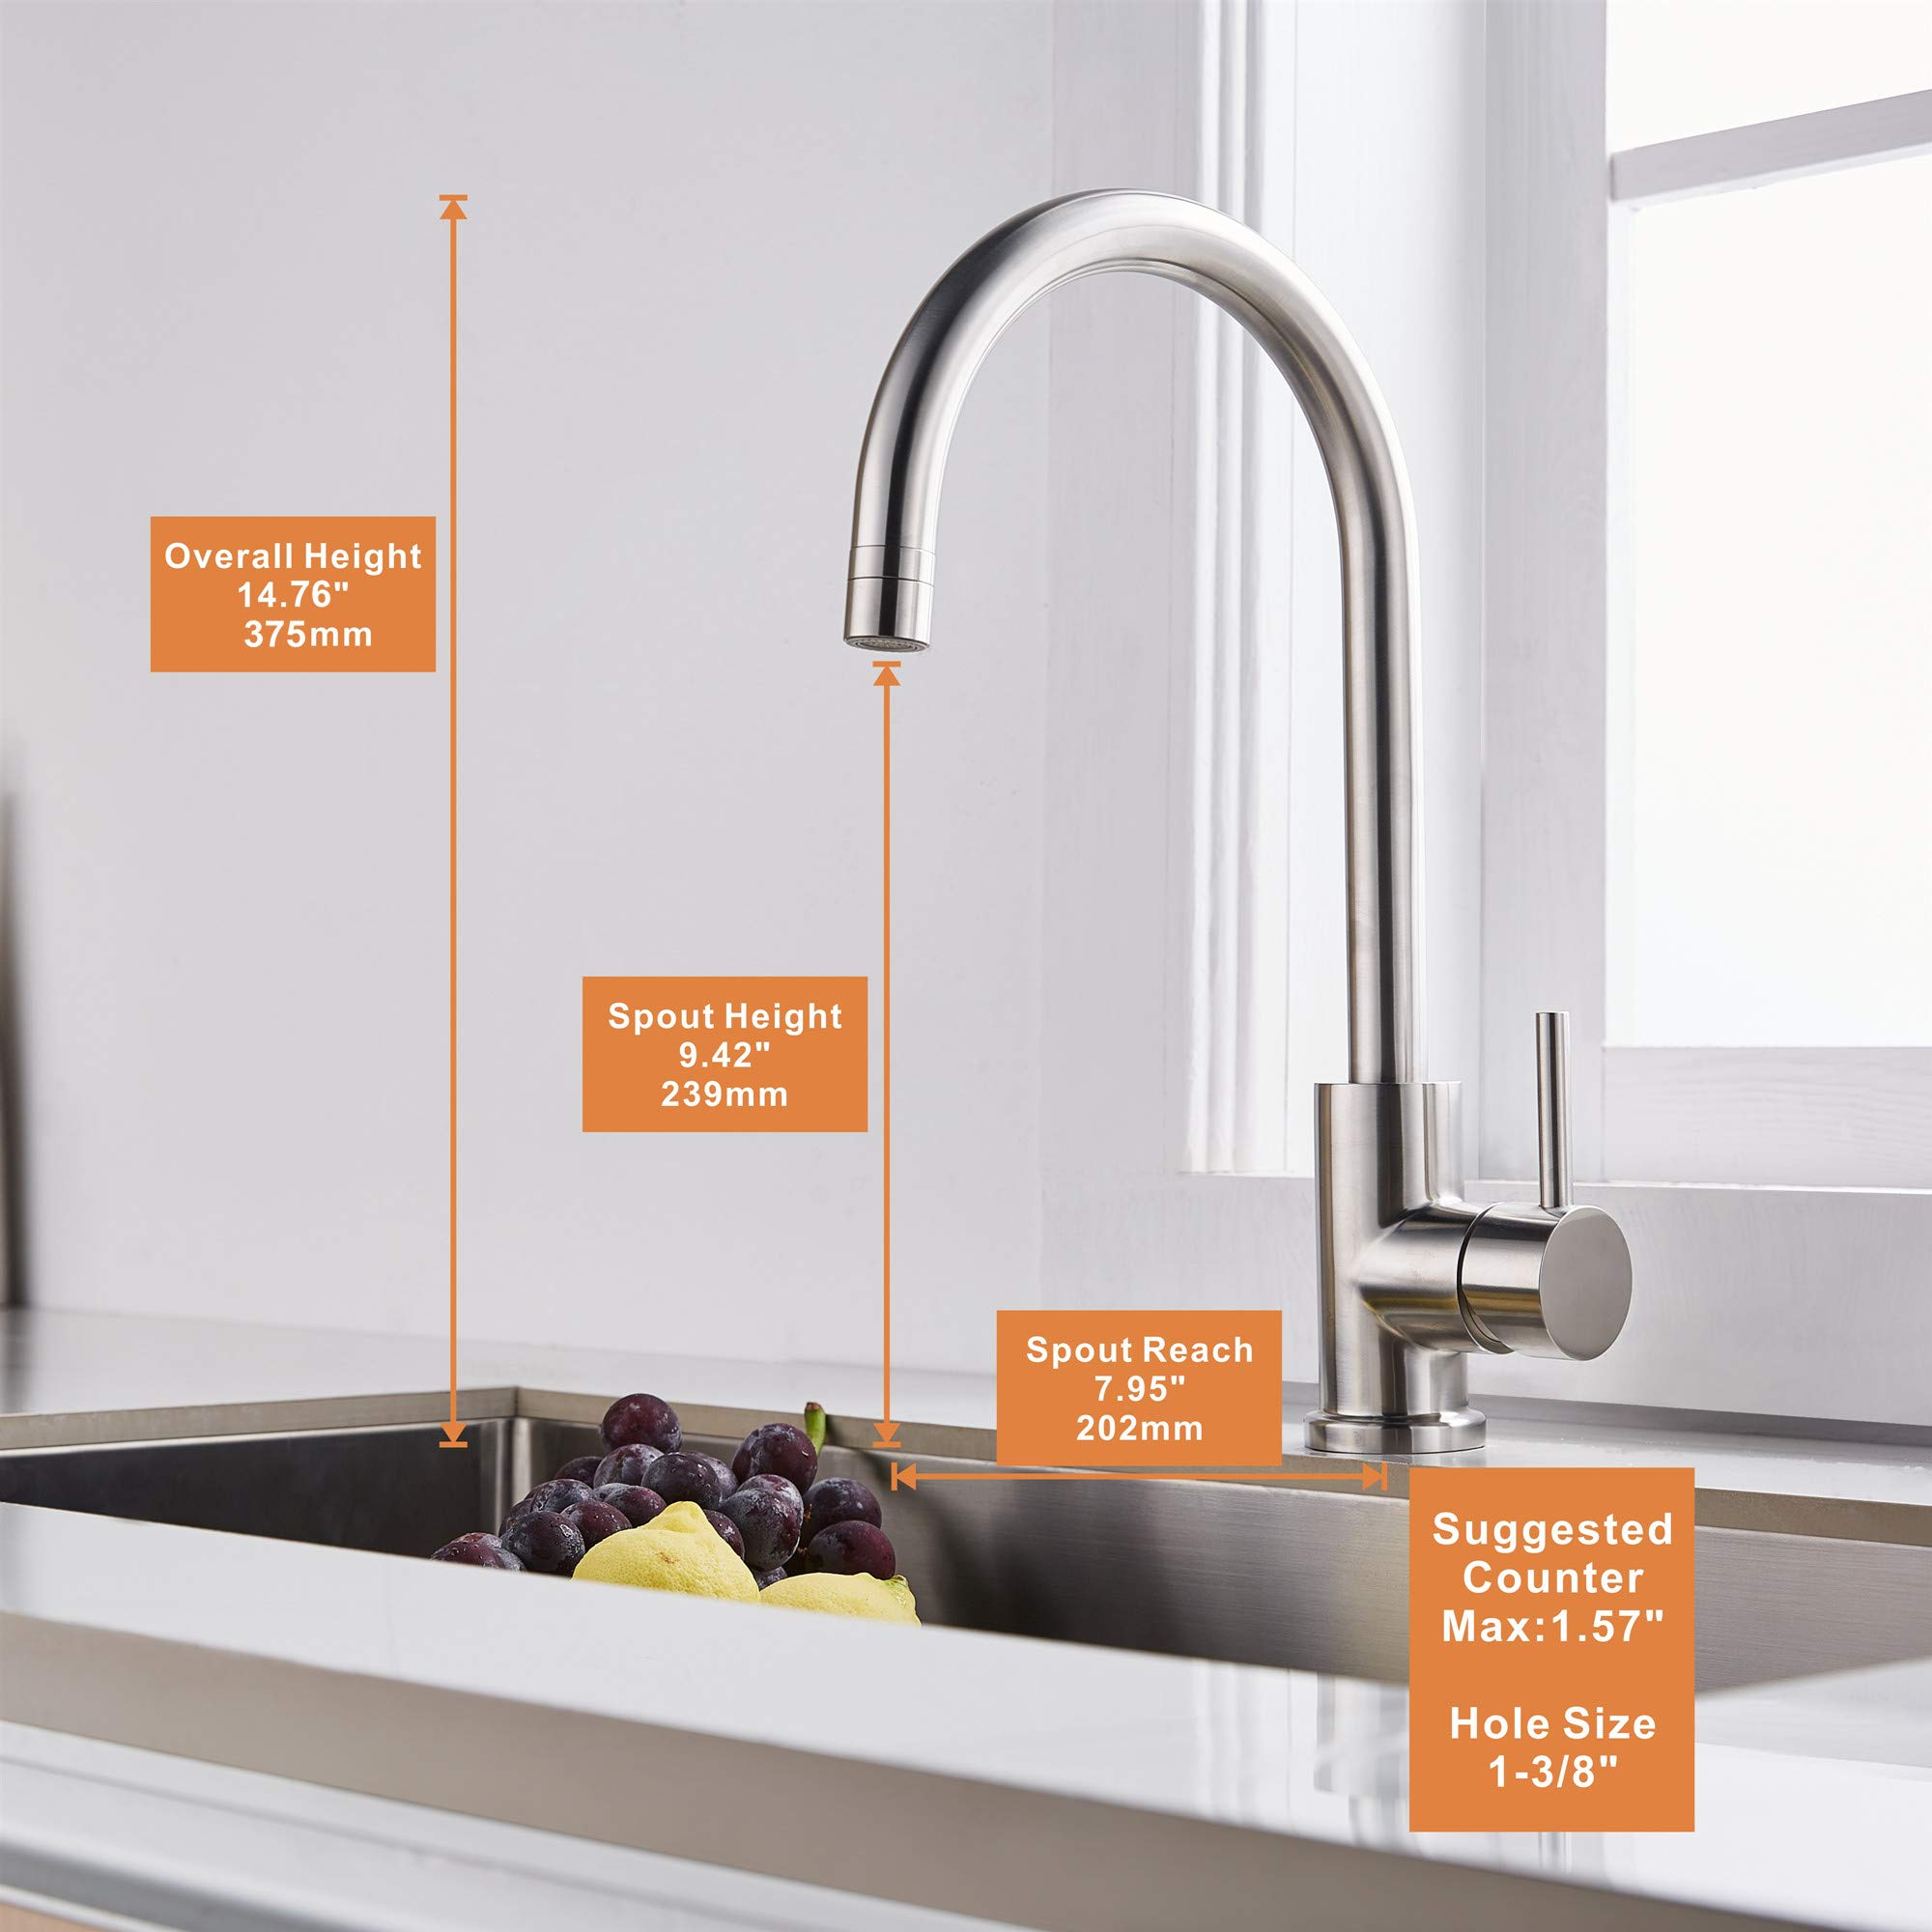 Trywell T304 Solid Stainless Steel Kitchen Sink Faucet, High Arc Single Lever Bar Faucet with Two-function Nozzle,1.8 Gpm by Trywell (Image #6)